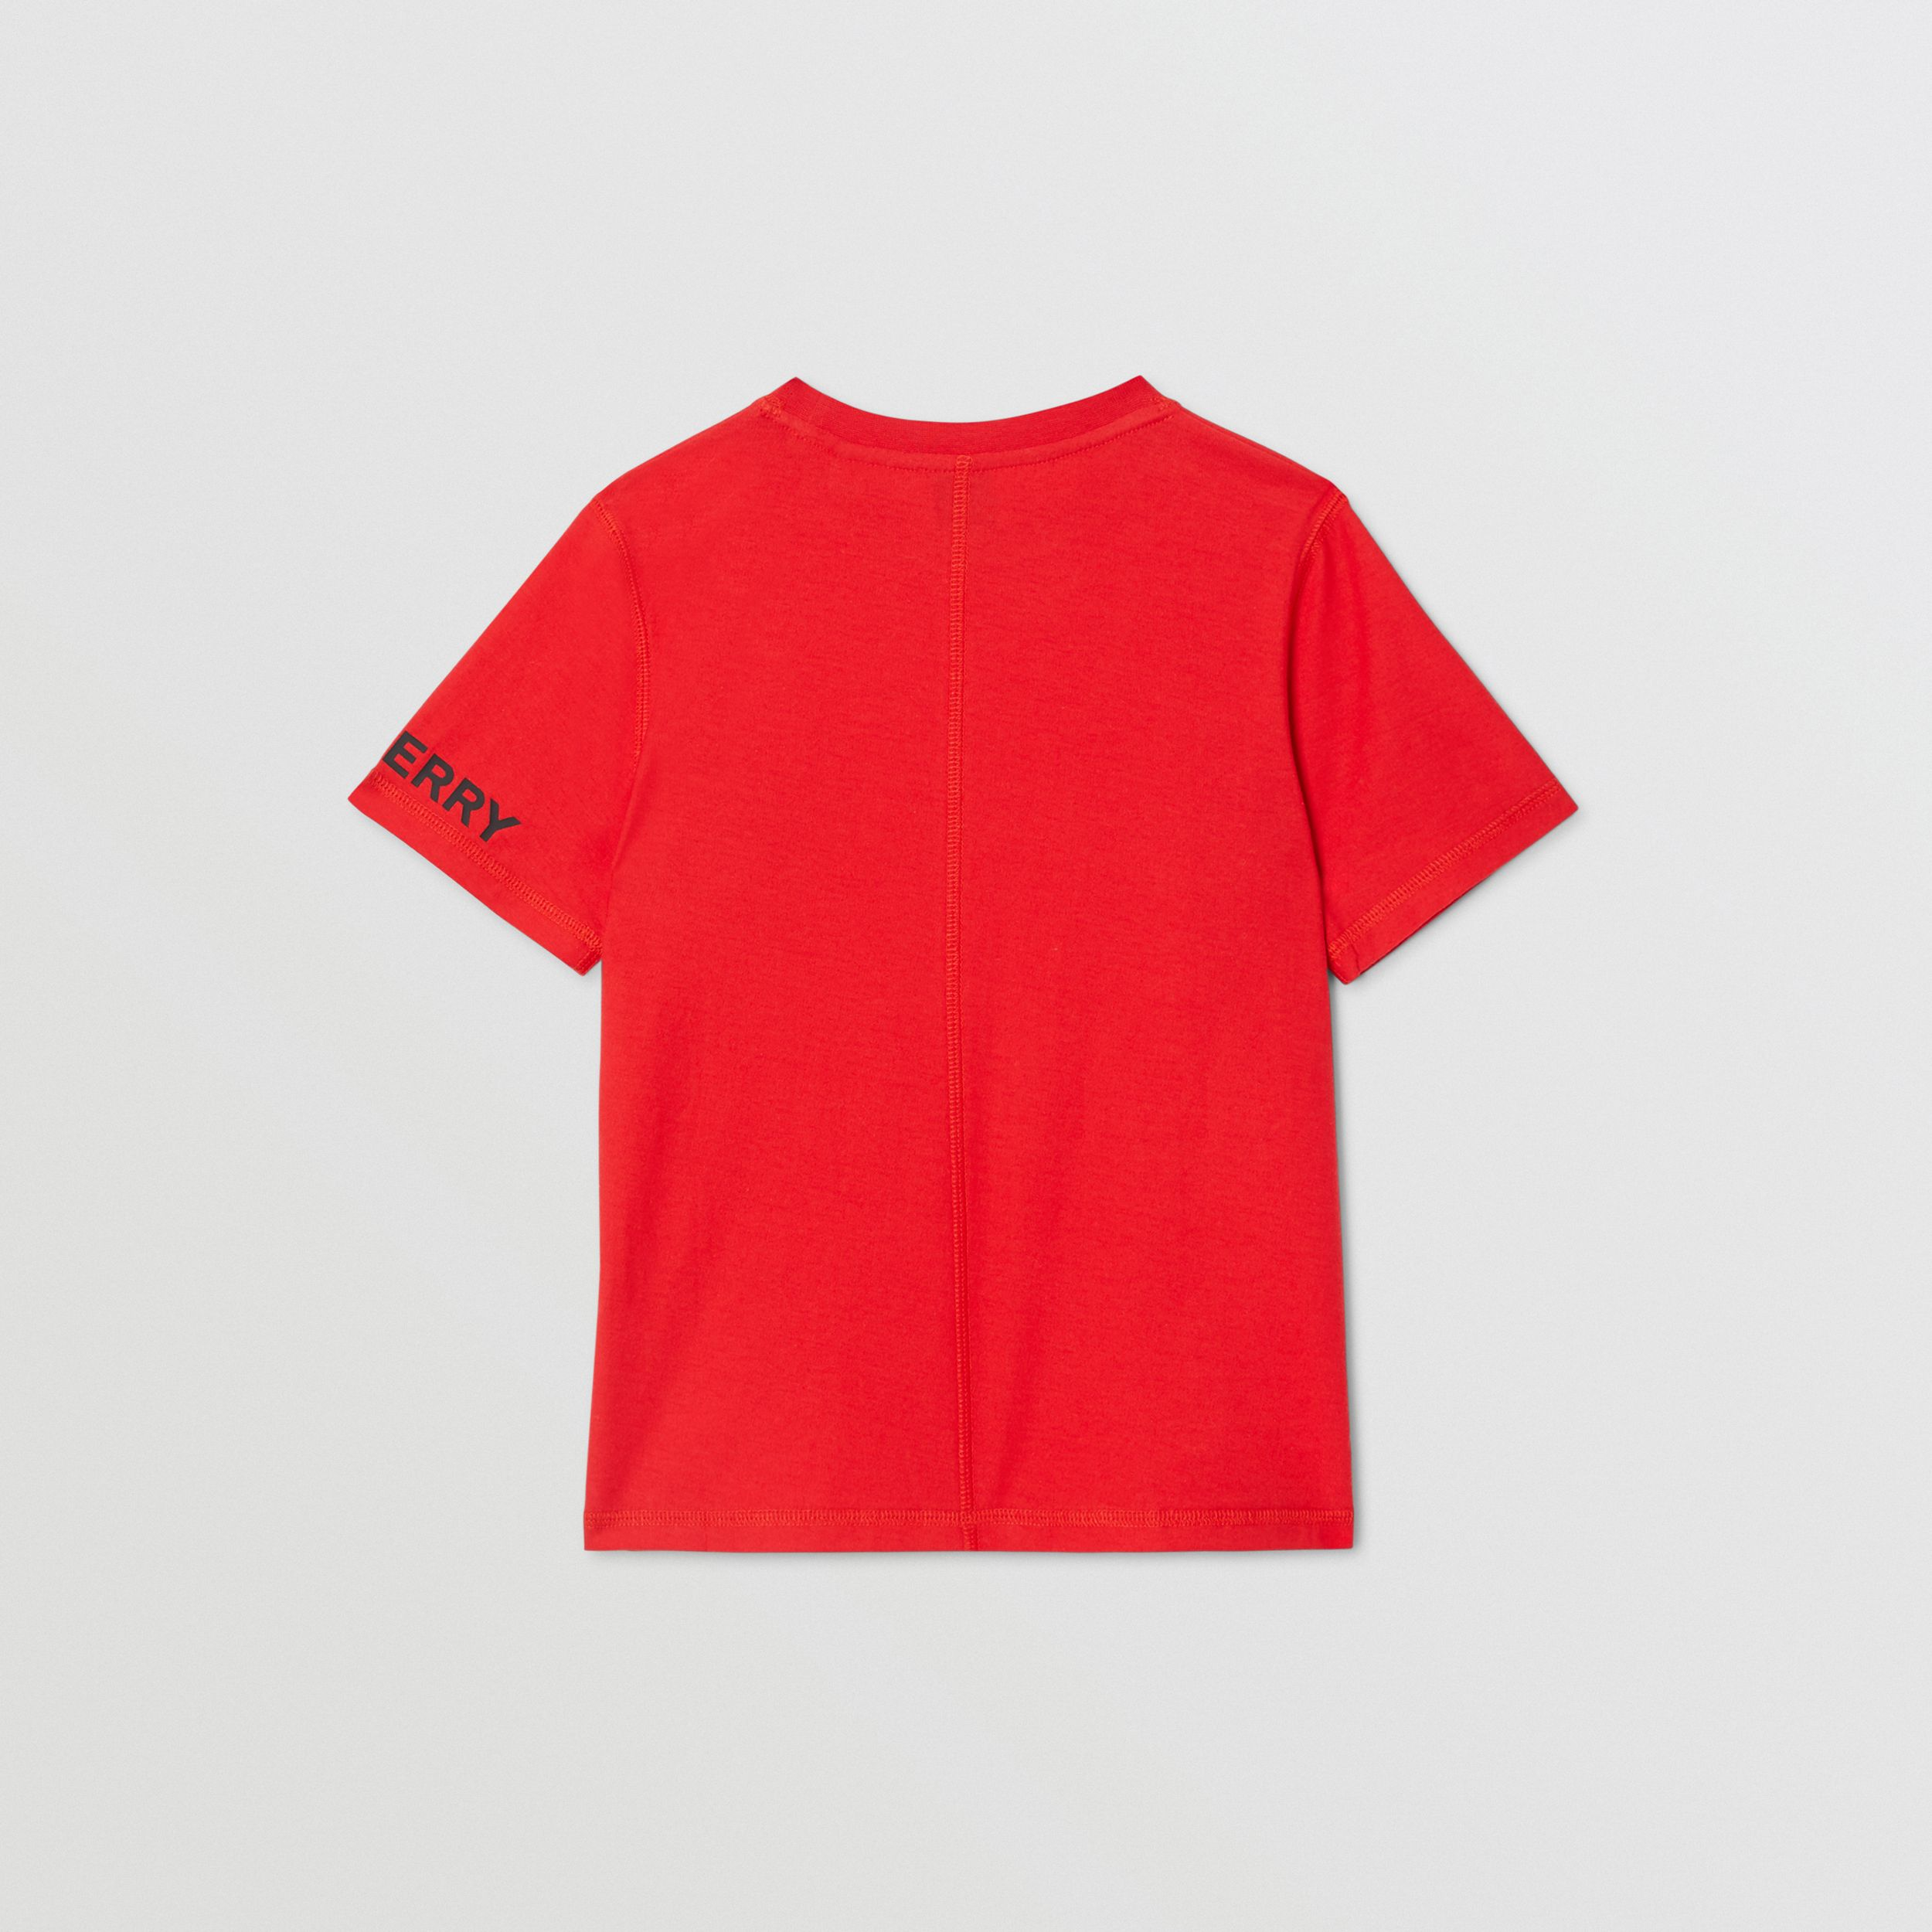 Logo Graphic Cotton T-shirt in Bright Red | Burberry - 4